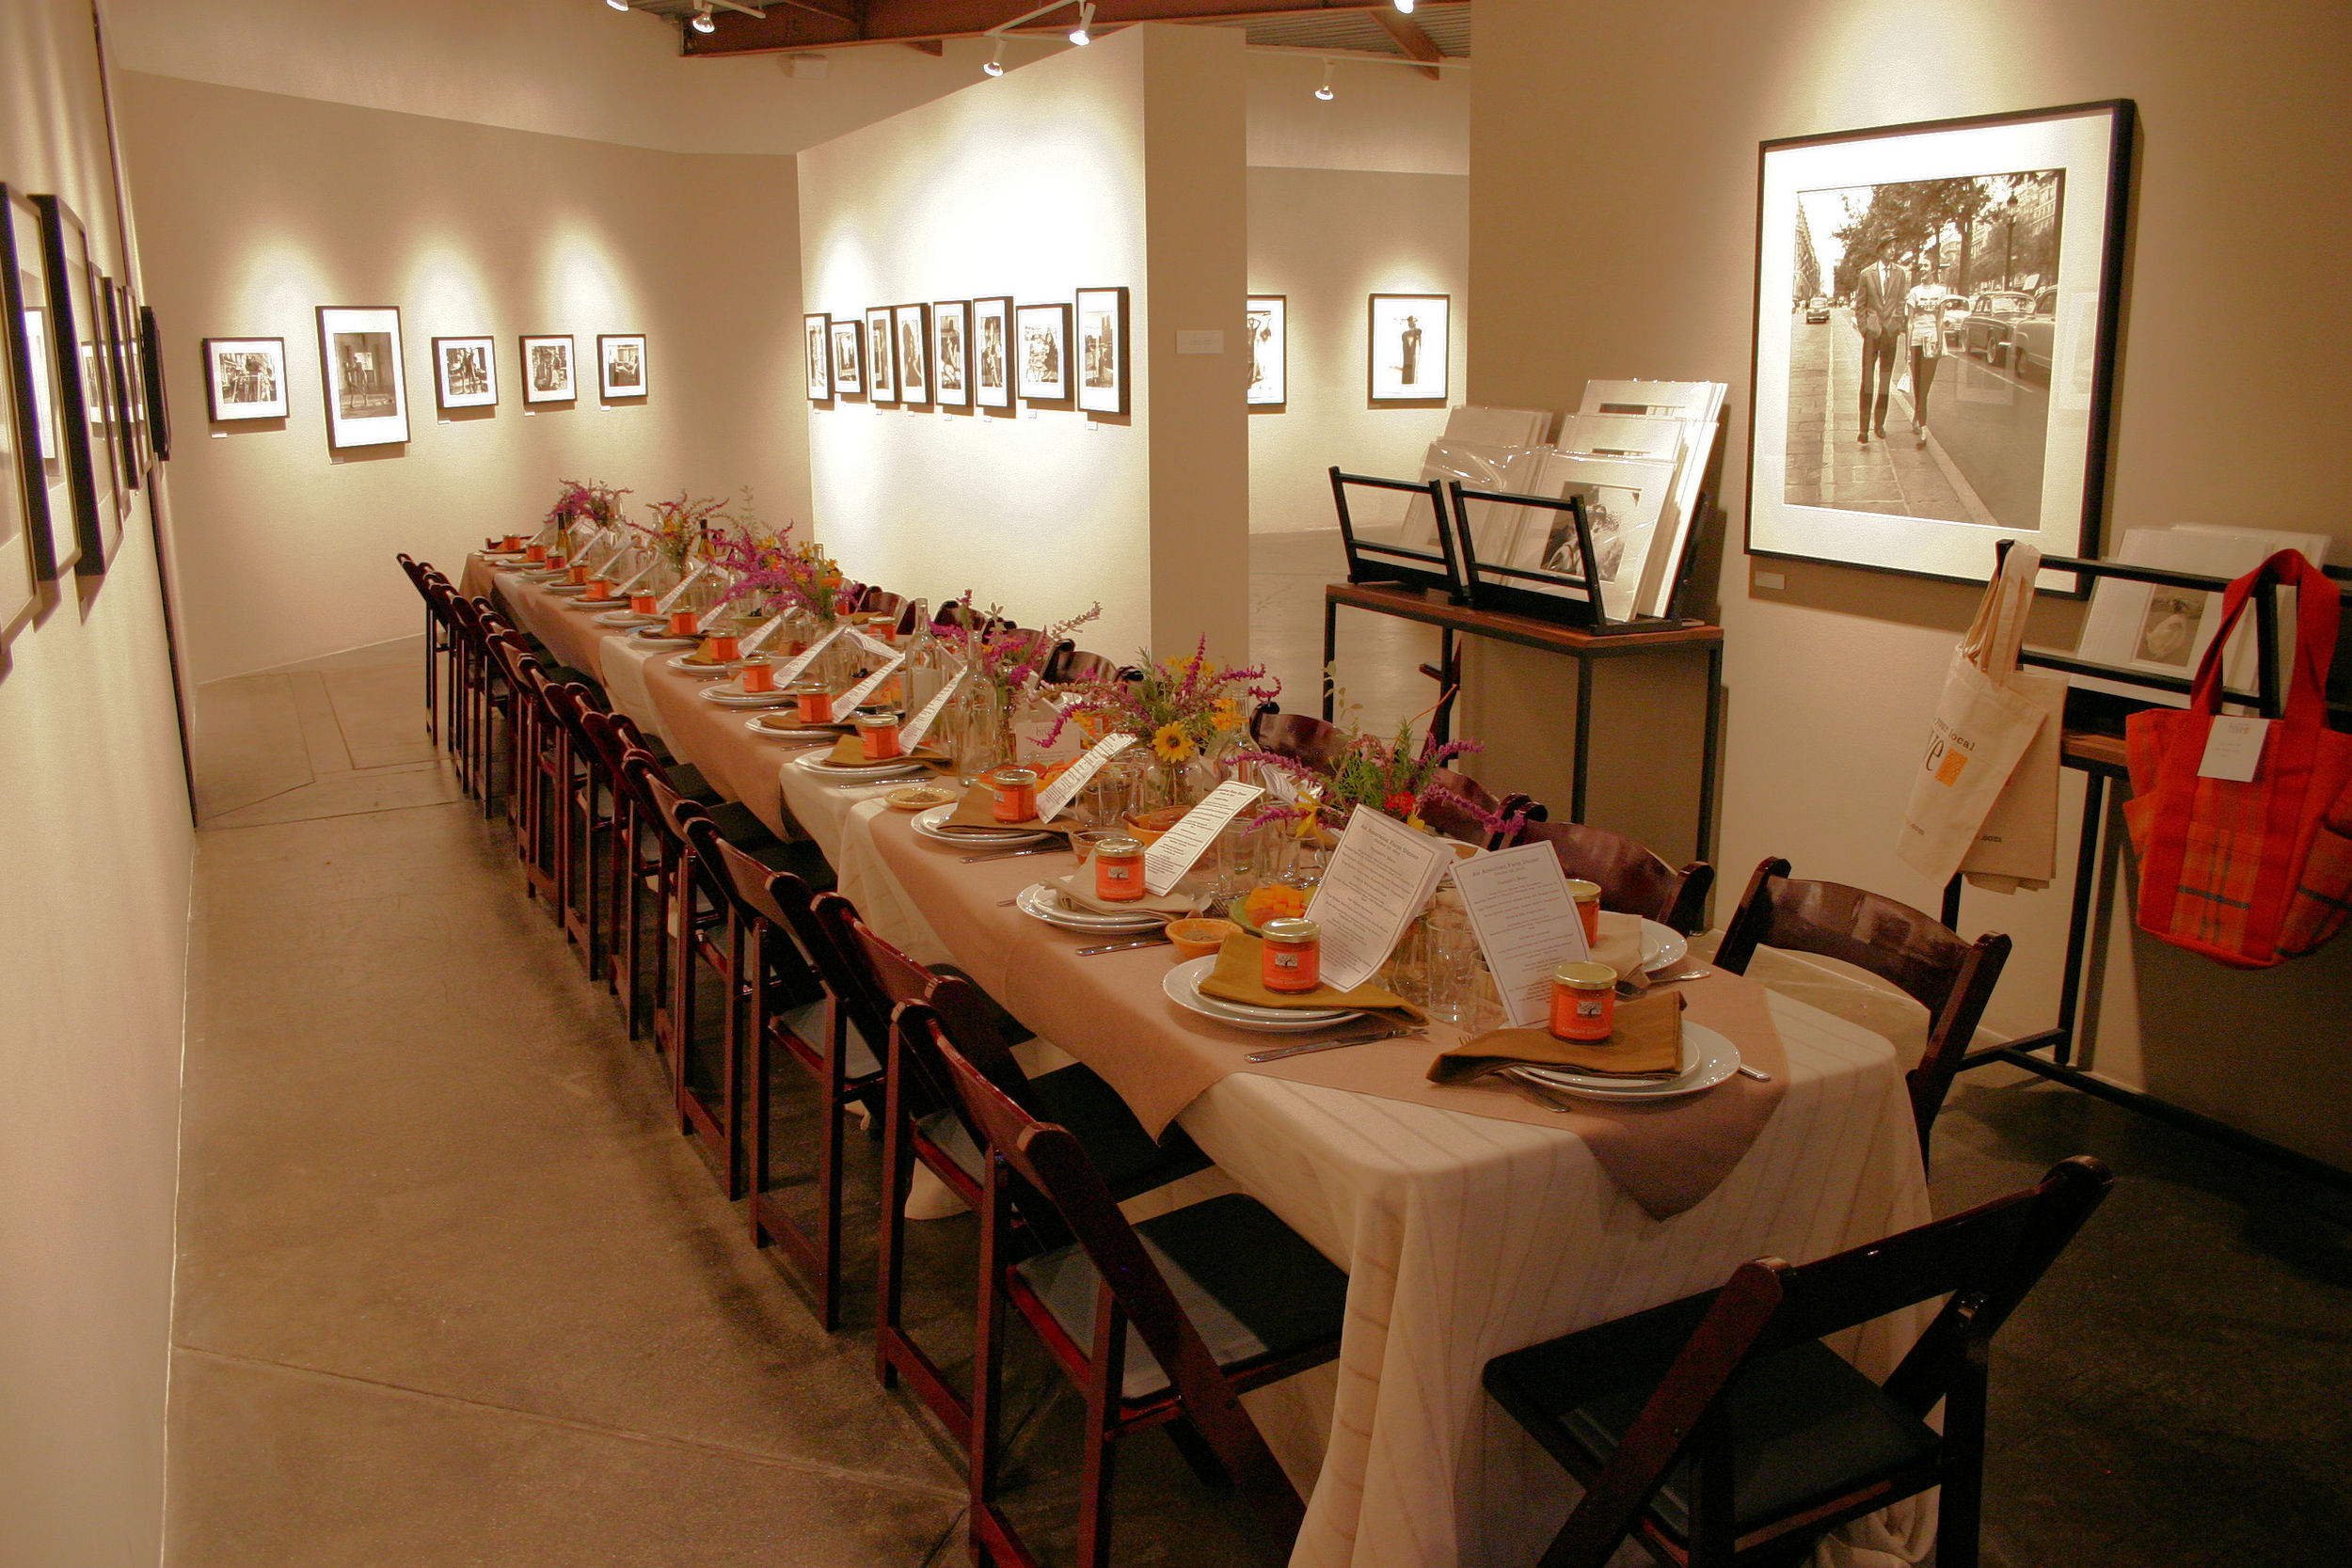 Table Sett in Peter Fetterman Gallery for American Farm Dinner 10-30-12.jpg